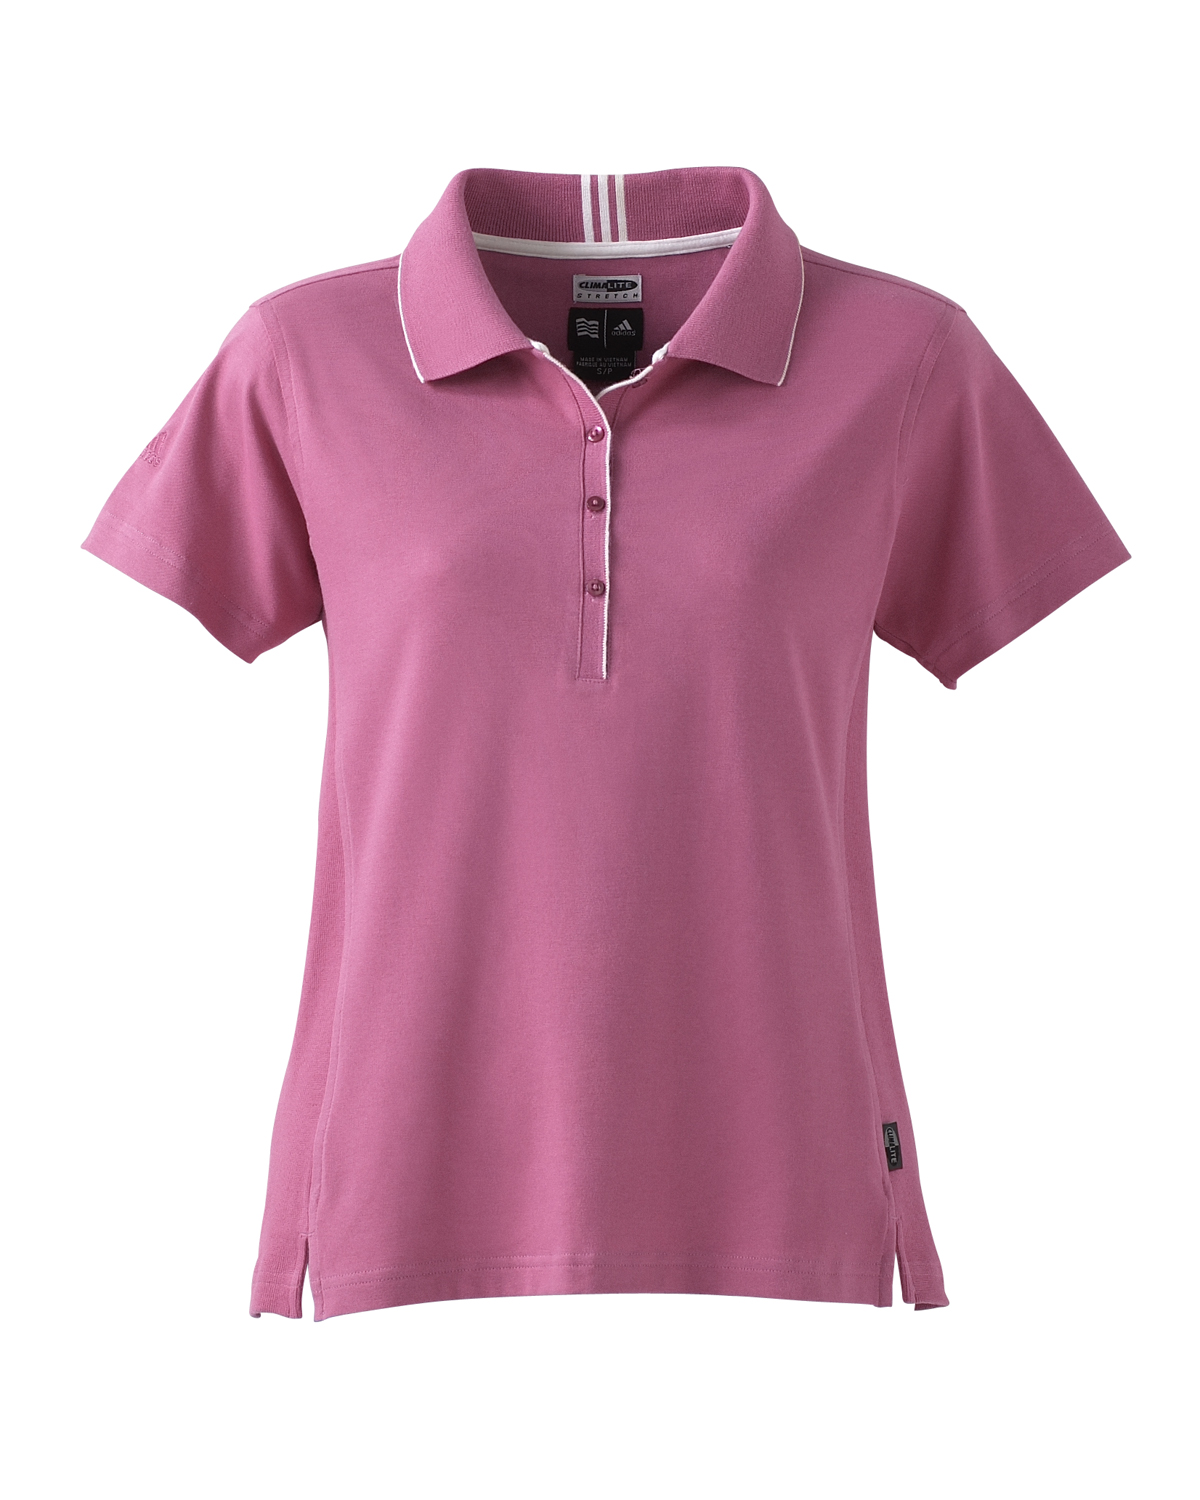 Adidas Climalite Womens Golf Shirt